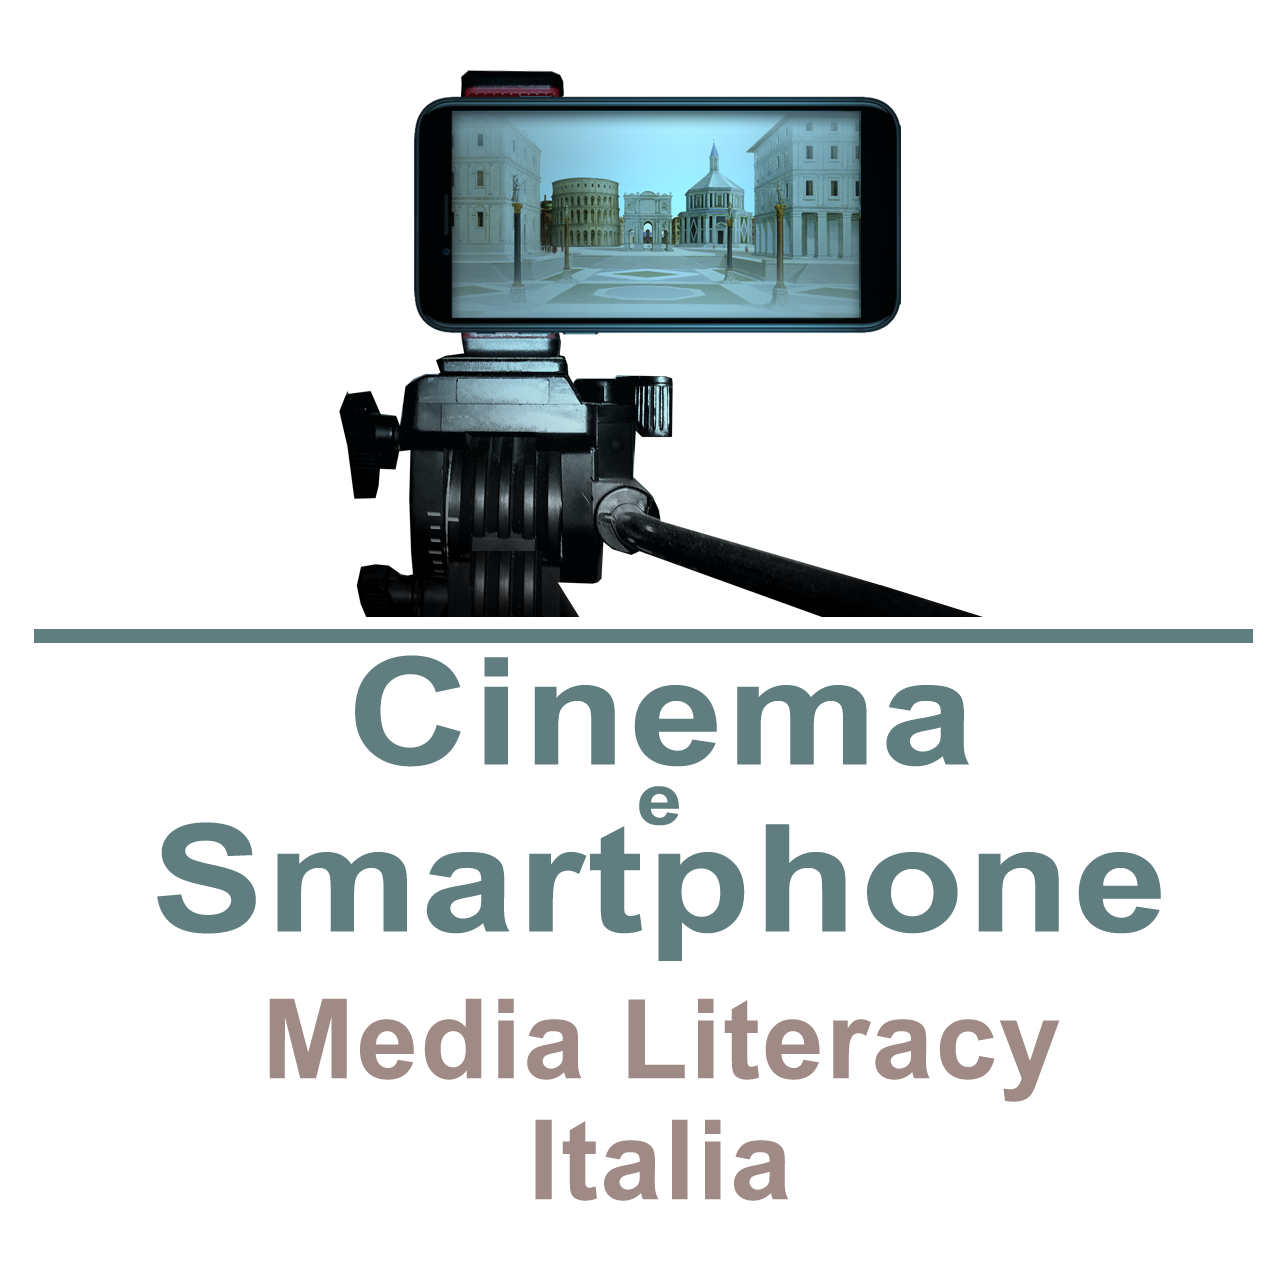 Cinema e Smartphone